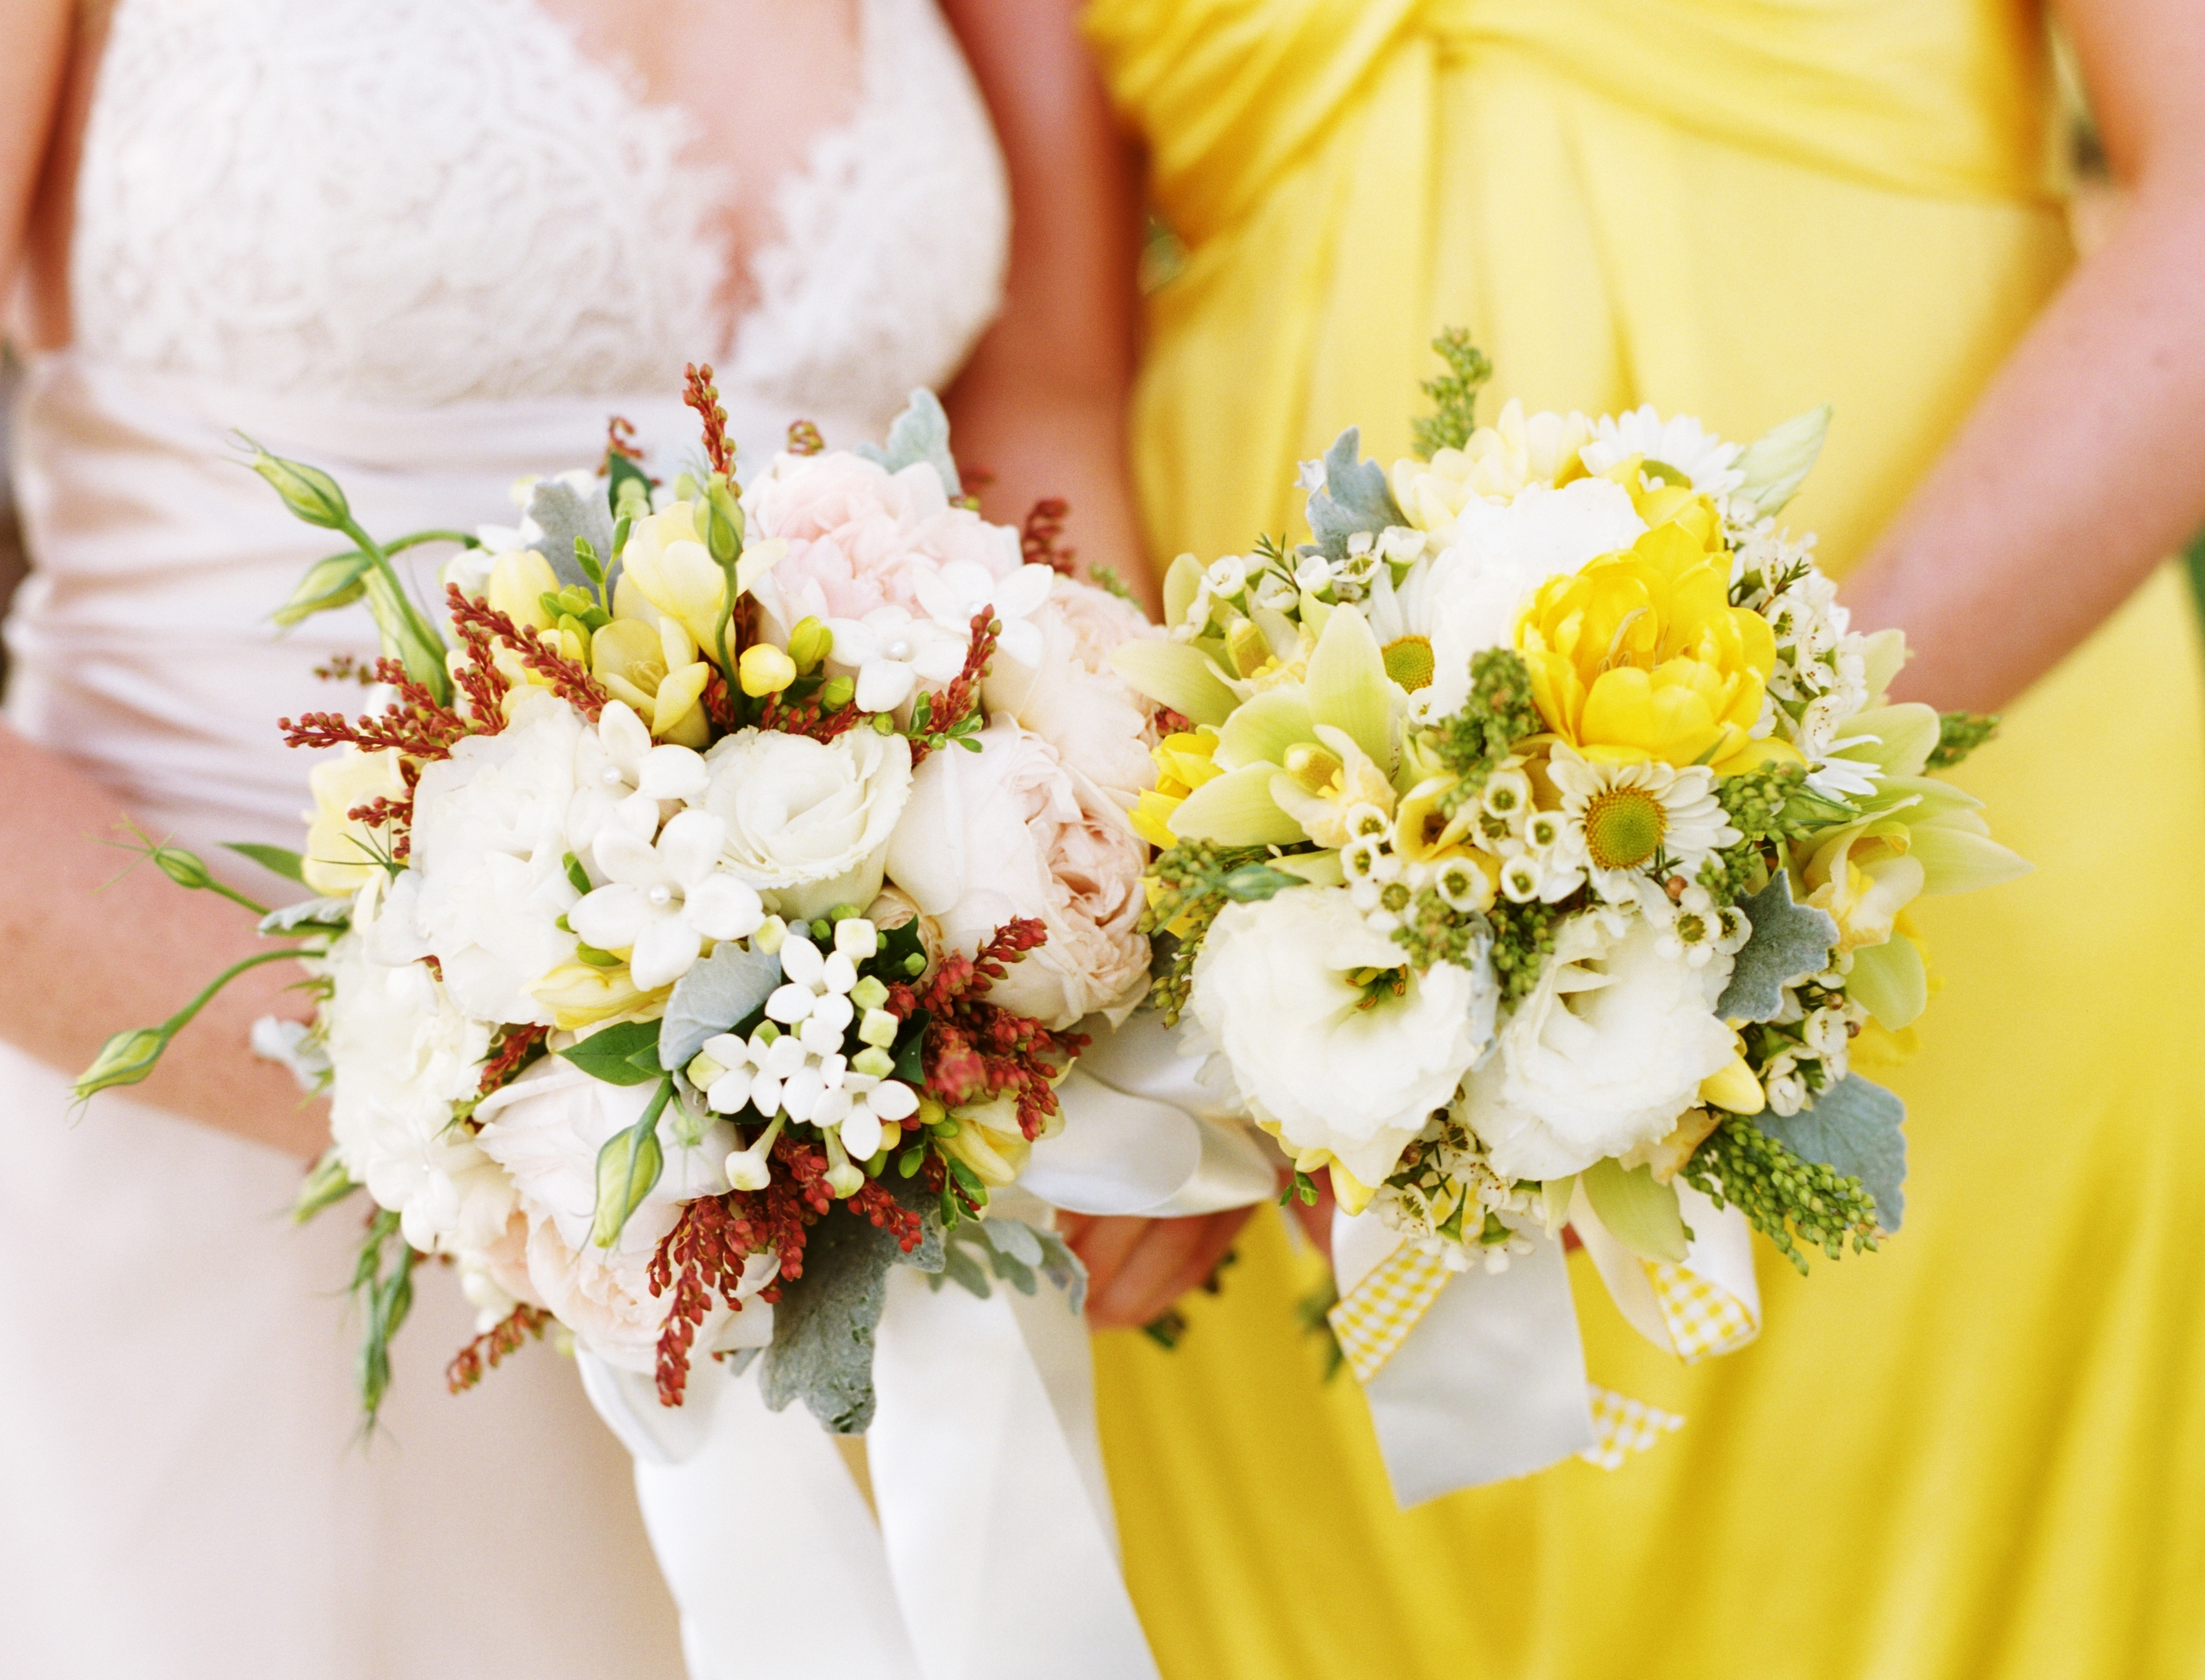 Flowers & Decor, yellow, Flowers, Wedding, Bouquets, Farm